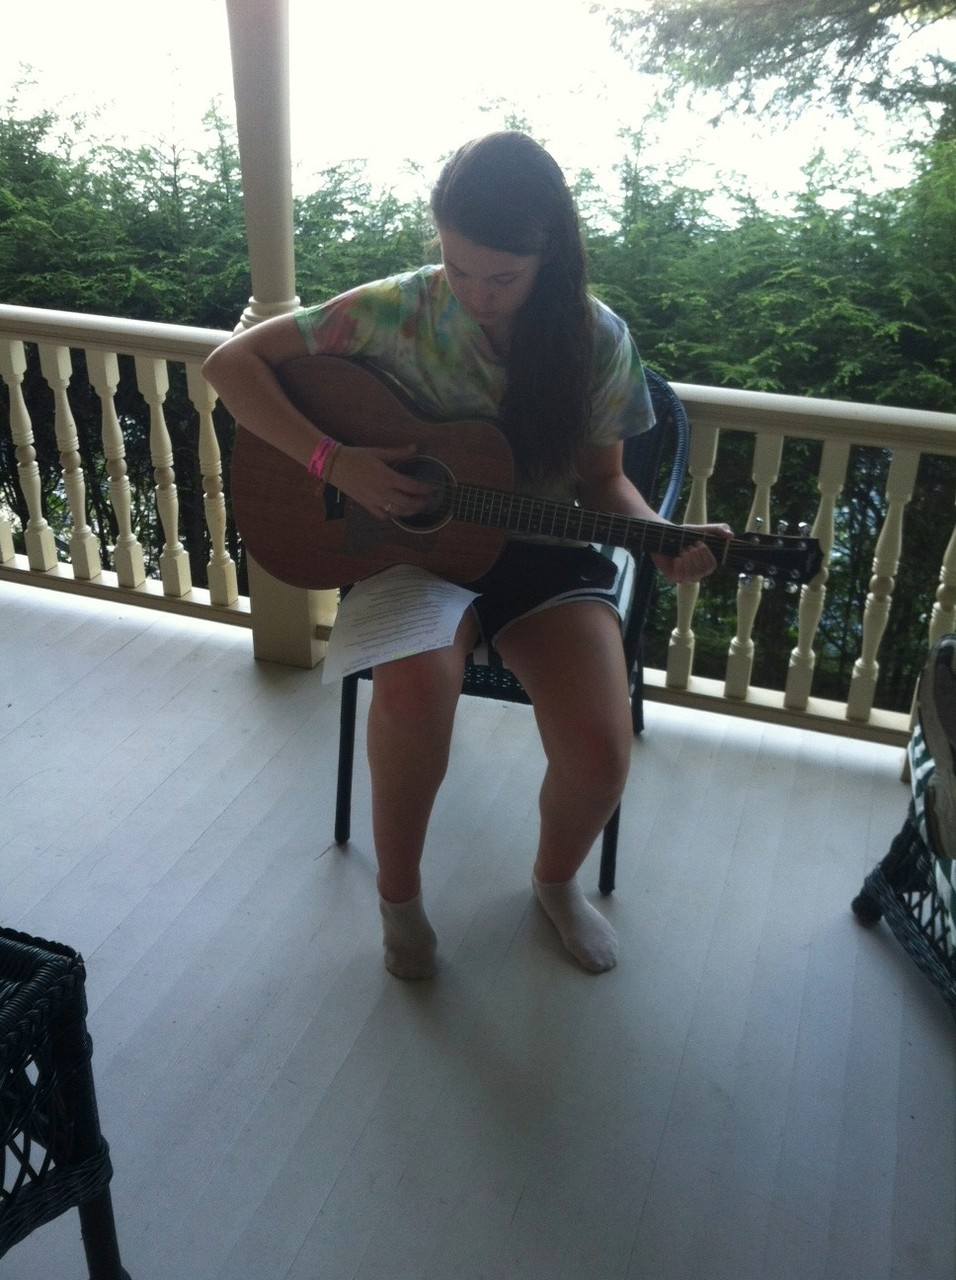 Kate plays the guitar, Skaneateles, Aug. 2015